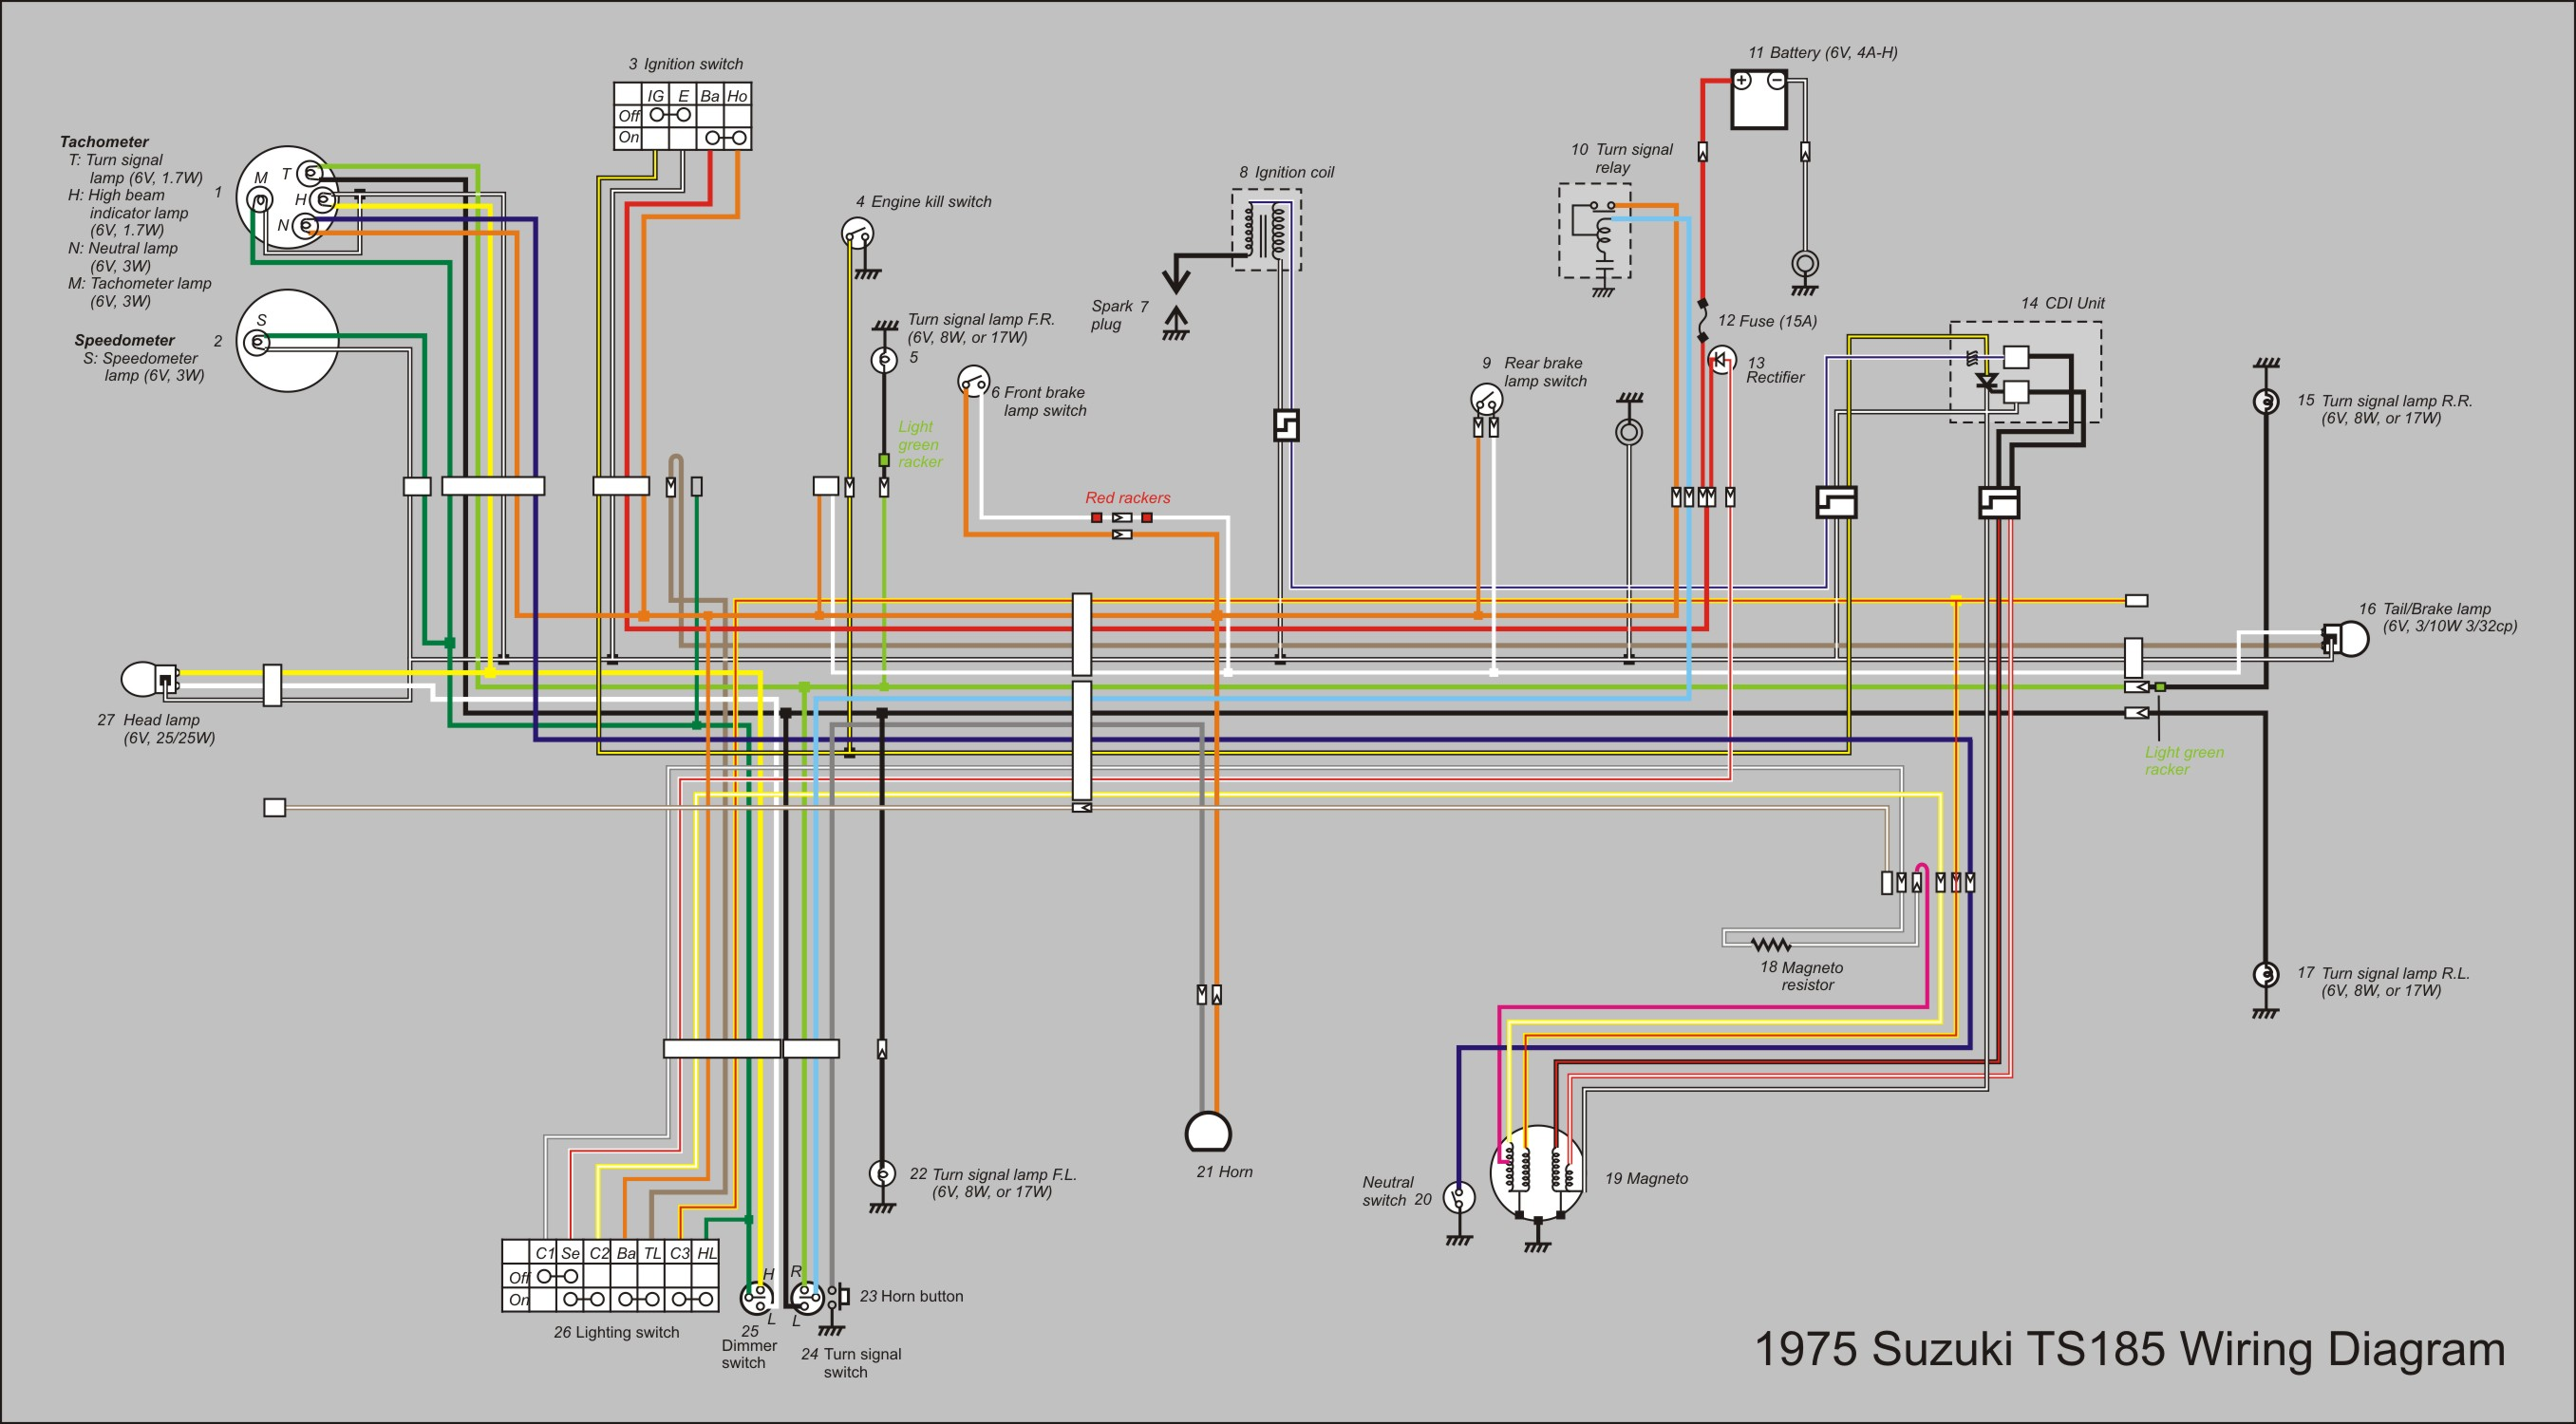 TS185_Wiring_Diagram_new file ts185 wiring diagram new jpg wikimedia commons i need a wiring diagram at readyjetset.co